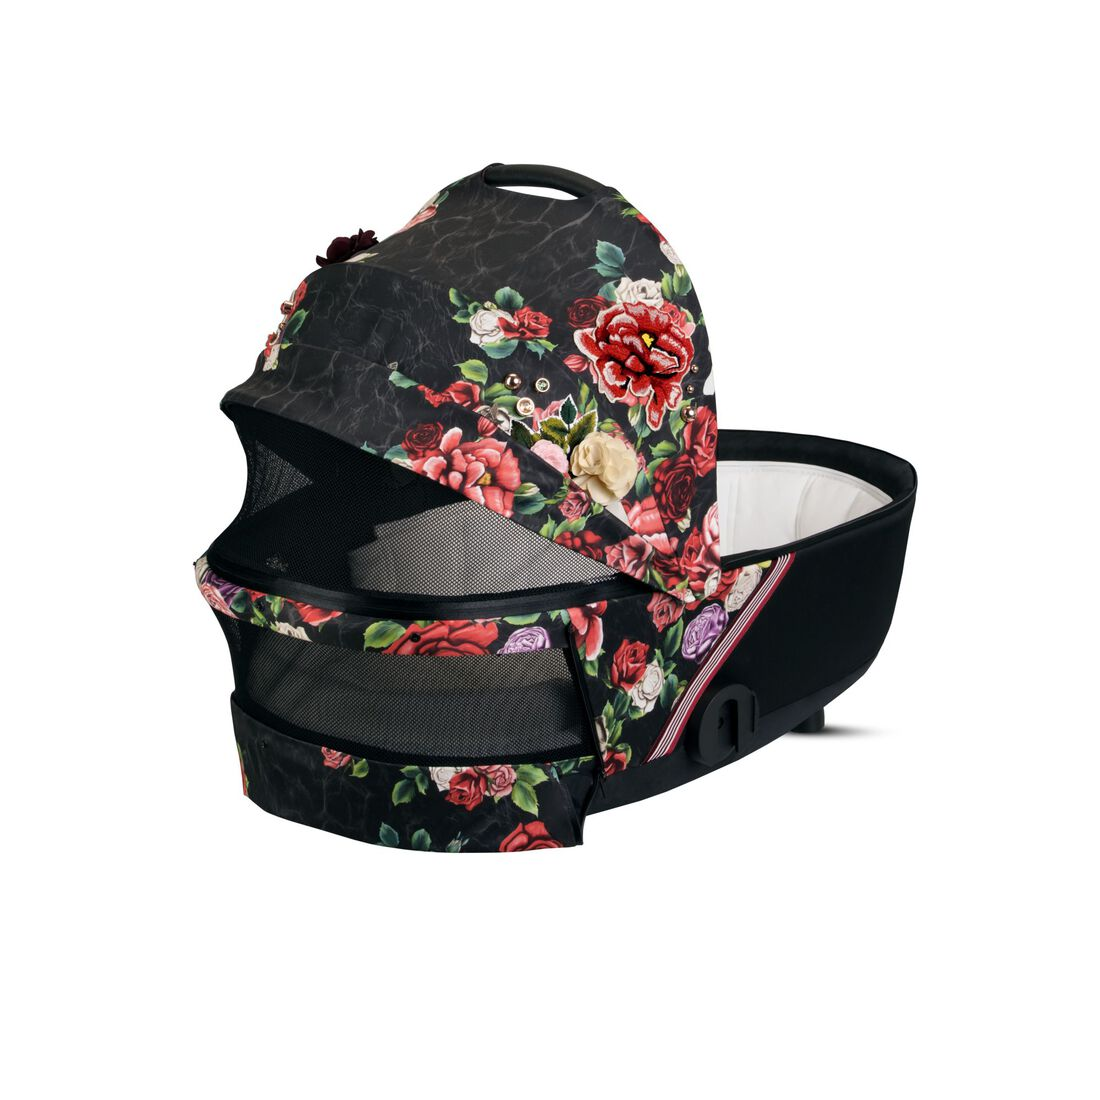 CYBEX Mios Lux Carry Cot - Spring Blossom Dark in Spring Blossom Dark large image number 3